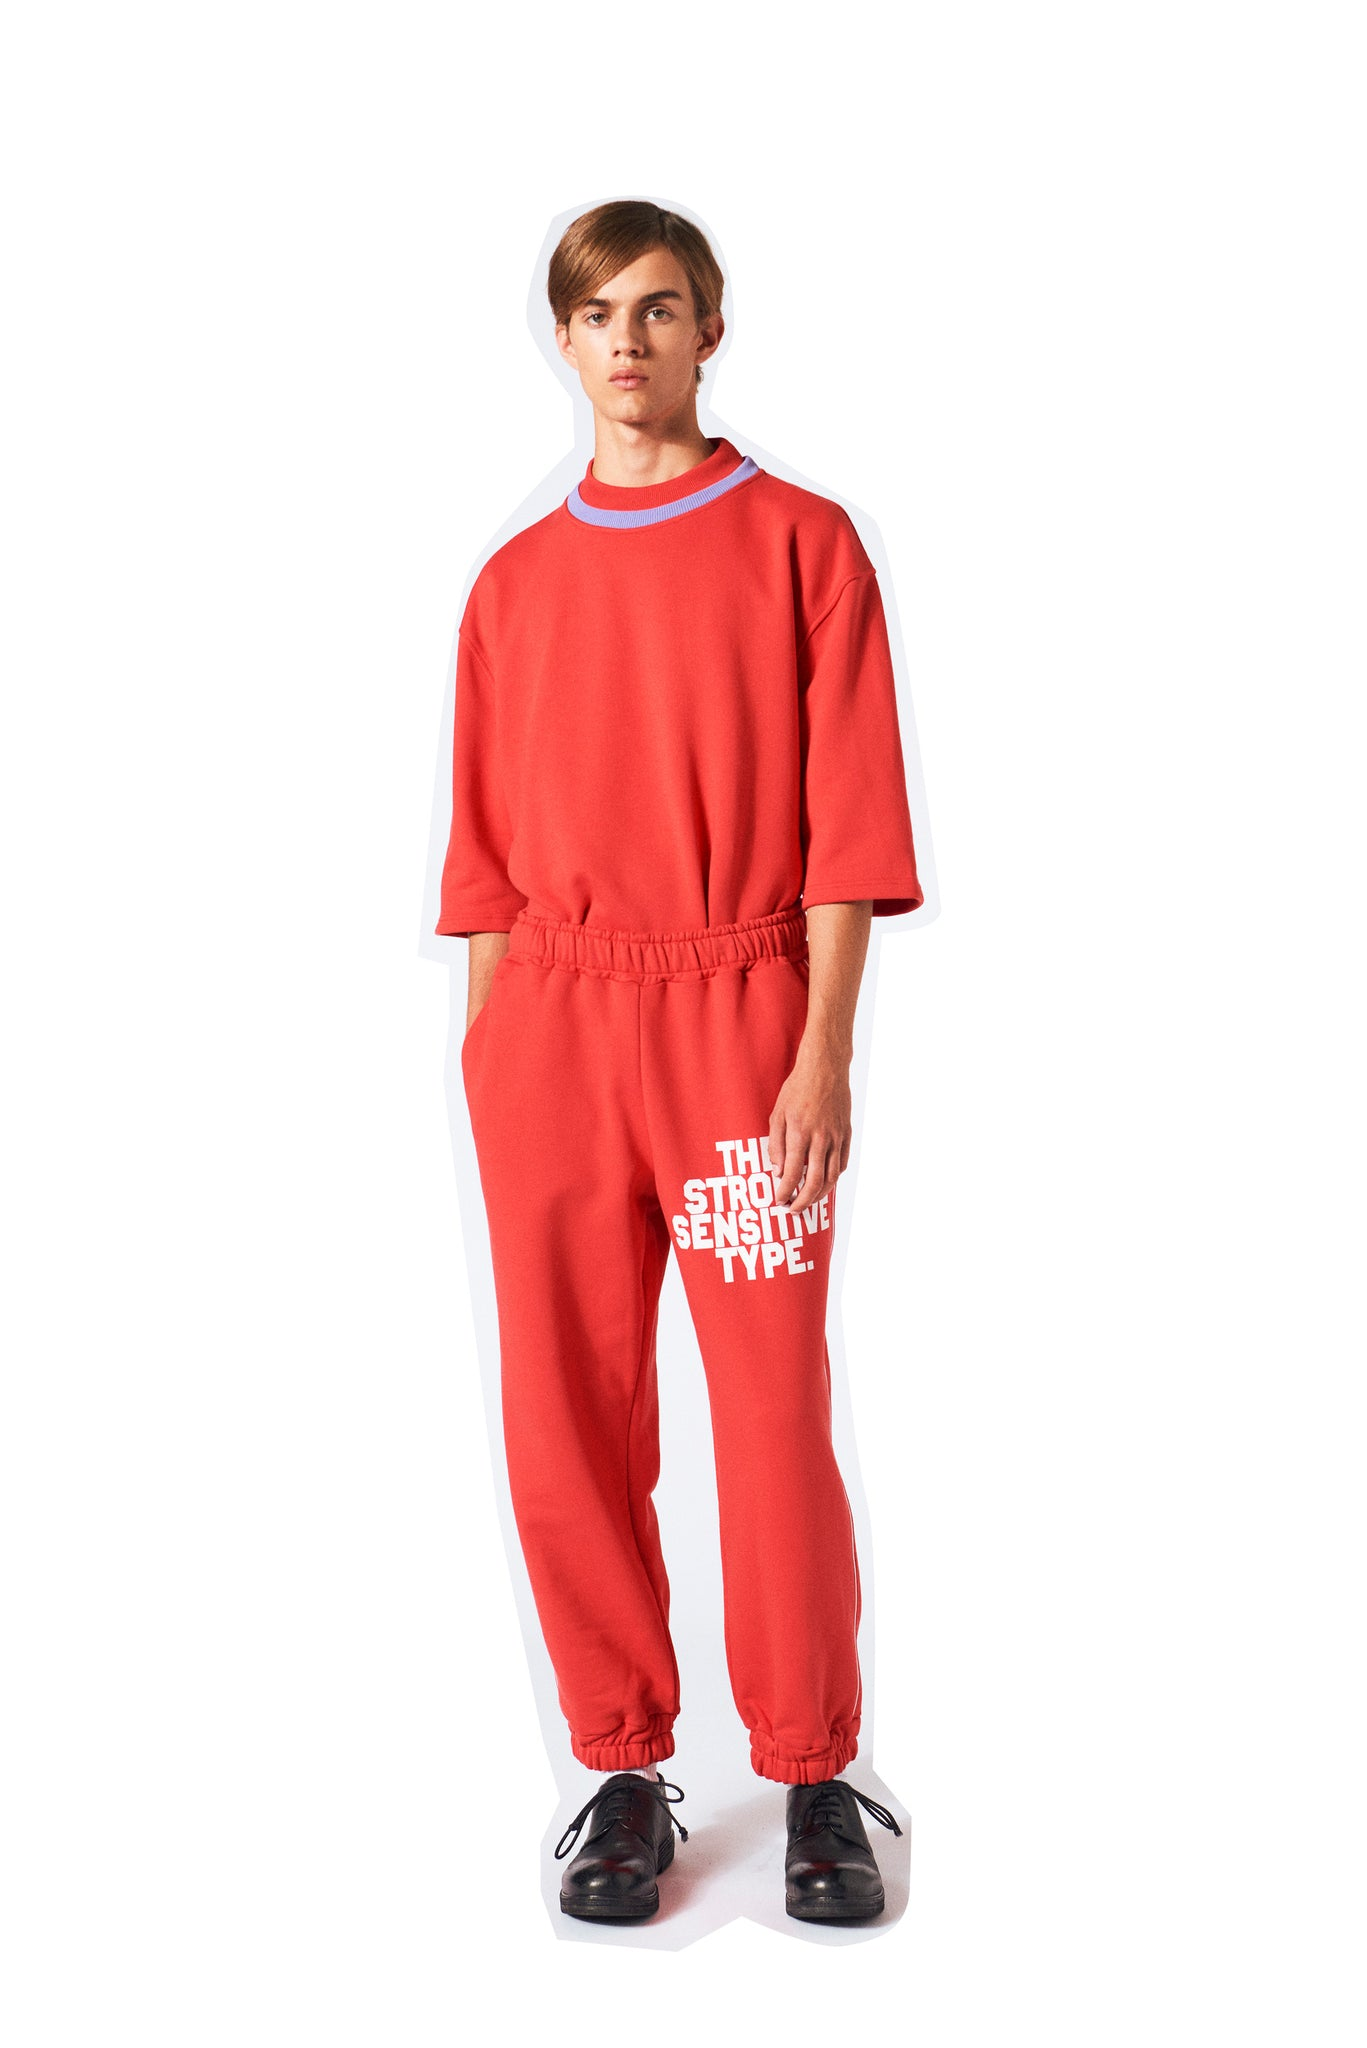 Martin Asbjørn sweat pants in red the strong sensitive type